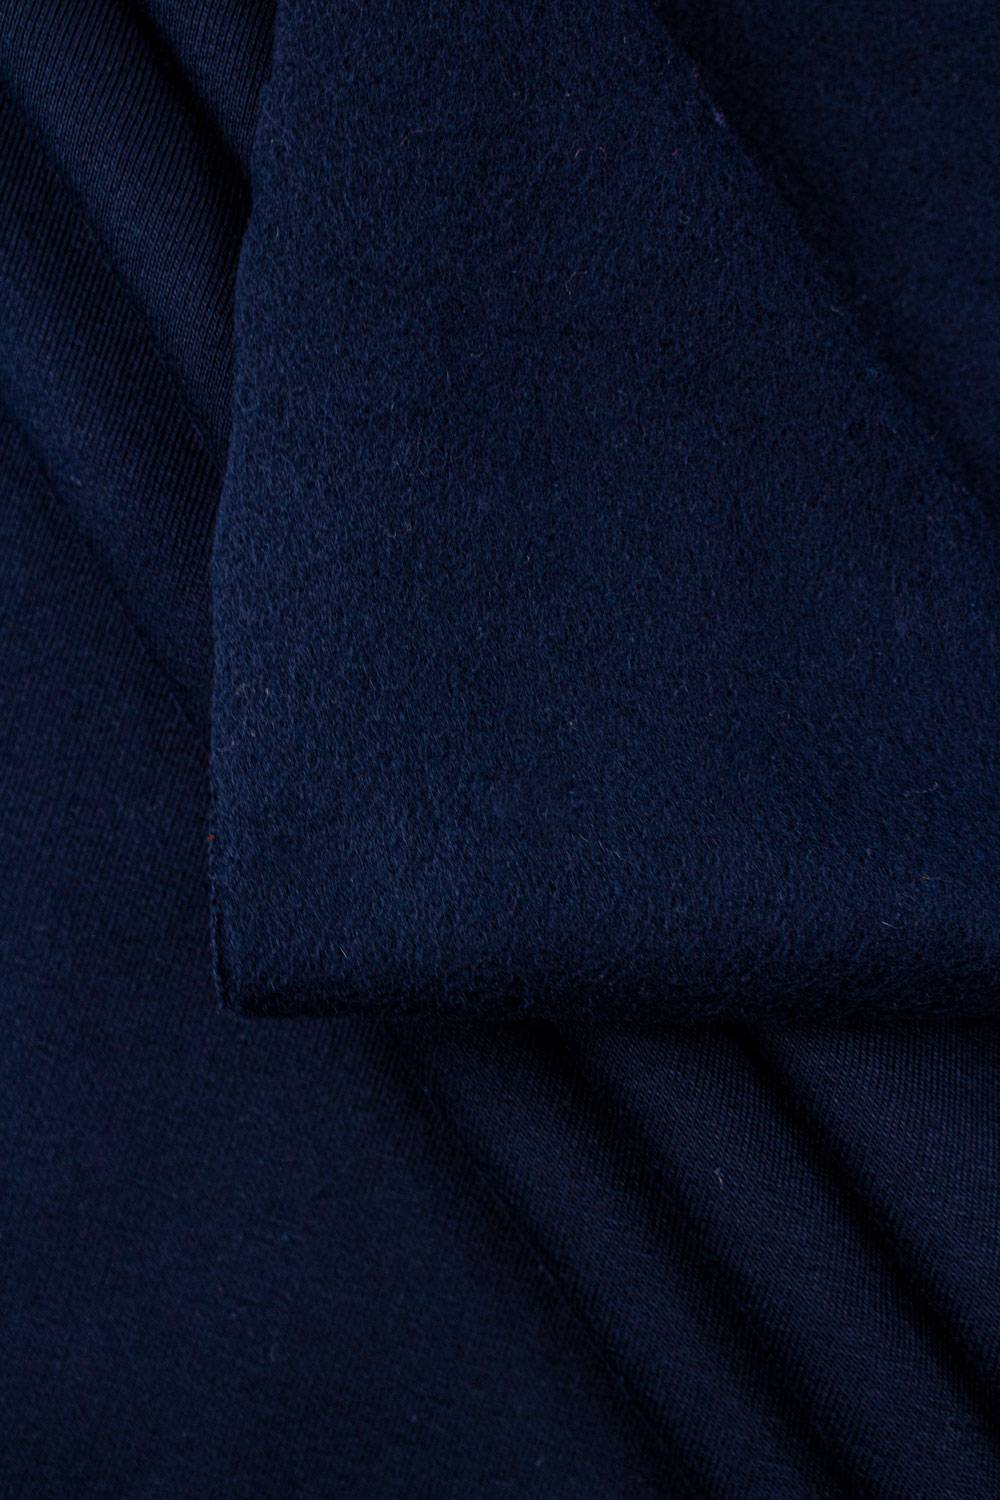 Knit - Sweatshirt Fleece - Navy Blue- 170 cm - 390 g/m2